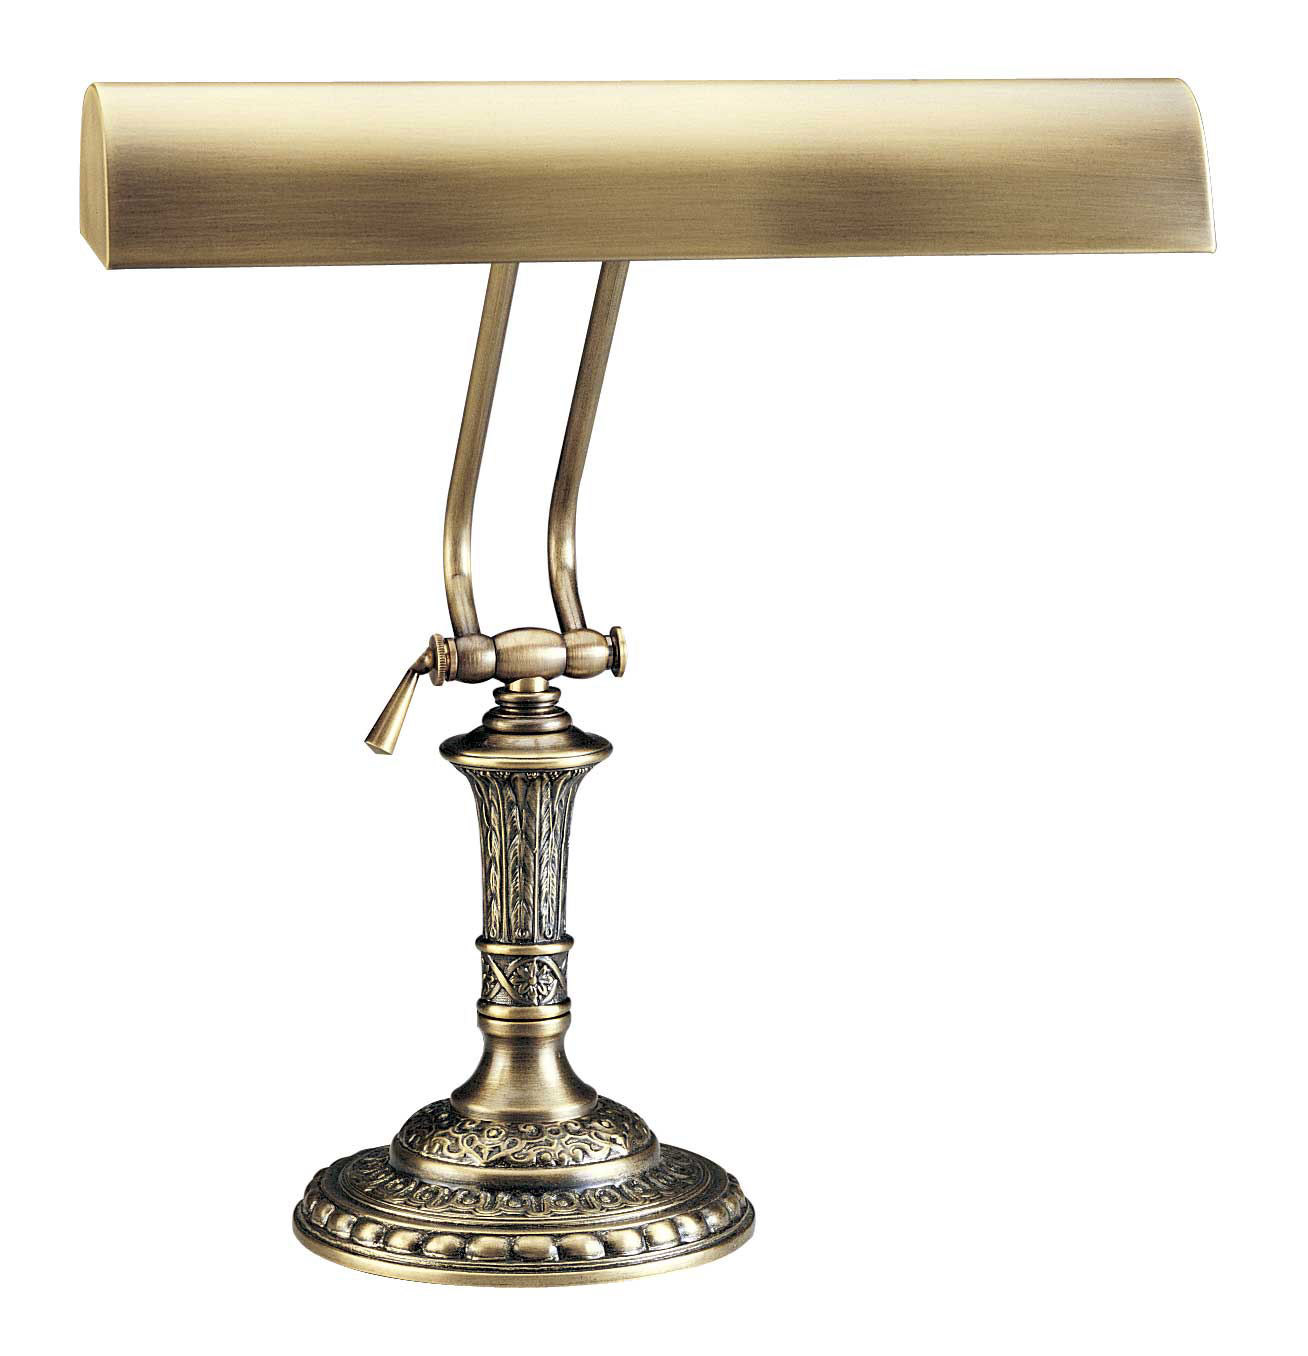 home lamps table lamps piano lamps house of troy p14 242 71. Black Bedroom Furniture Sets. Home Design Ideas